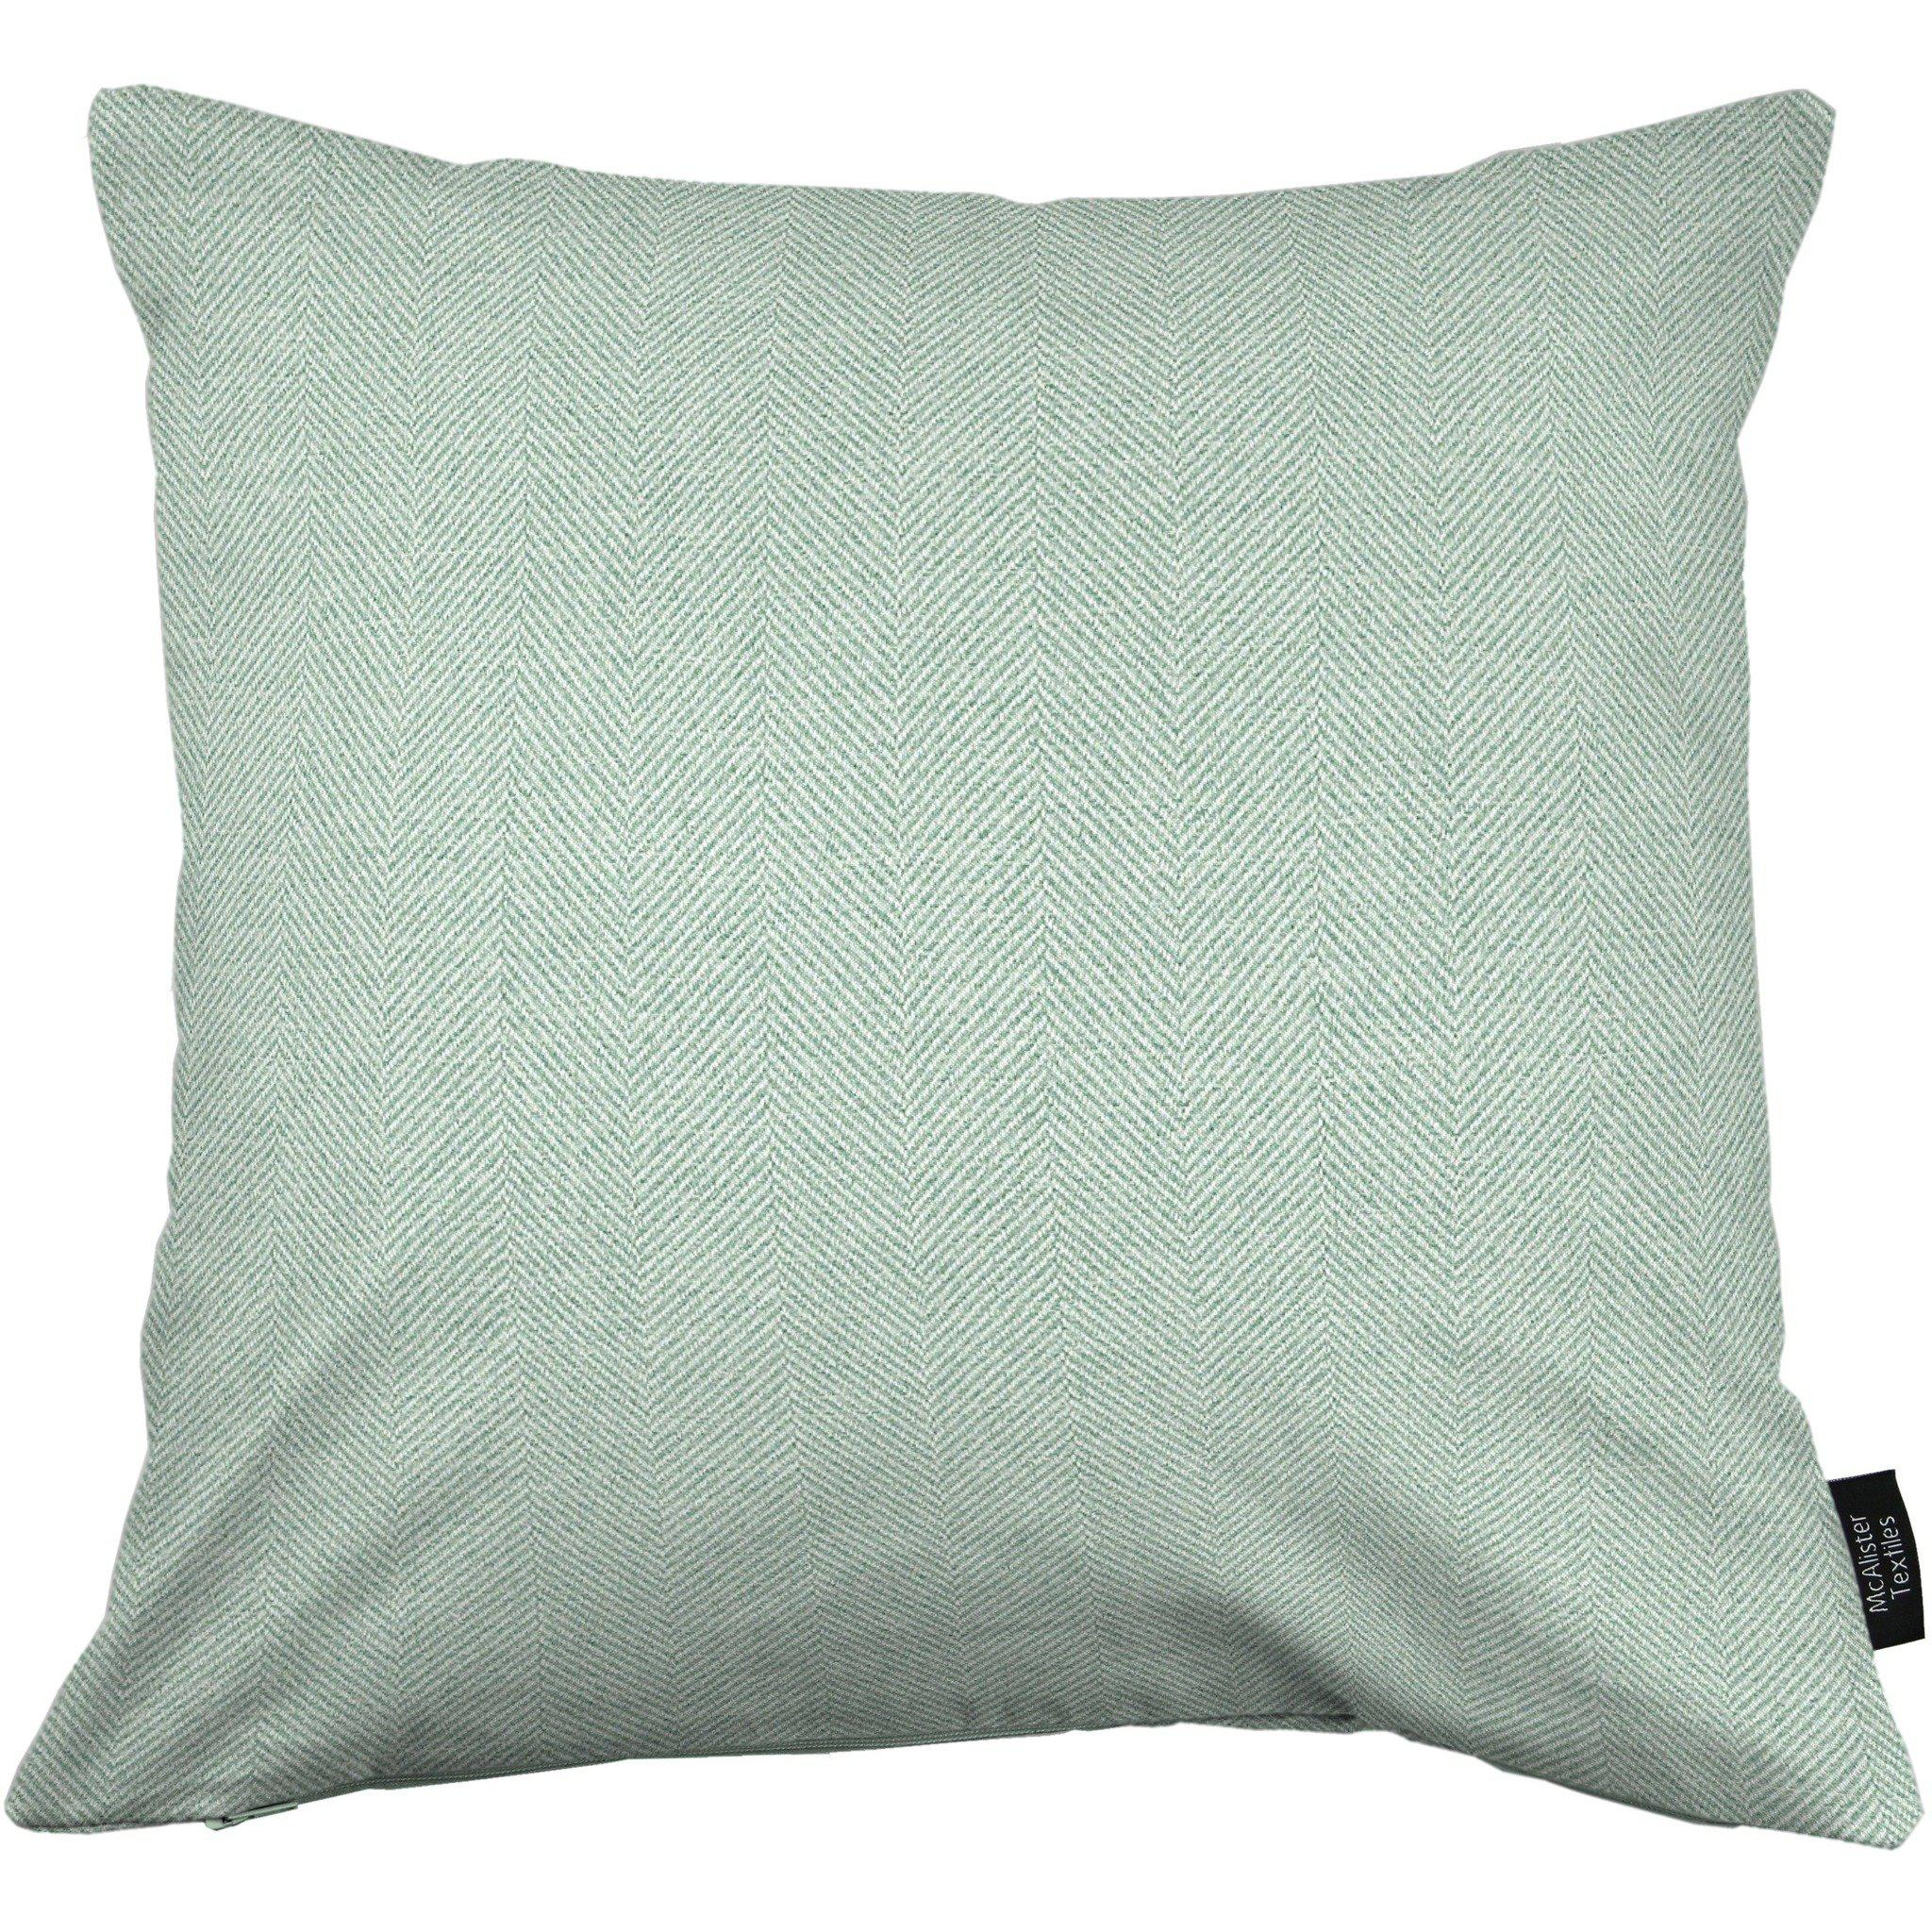 McAlister Textiles Herringbone Duck Egg Blue Cushion Cushions and Covers Cover Only 43cm x 43cm